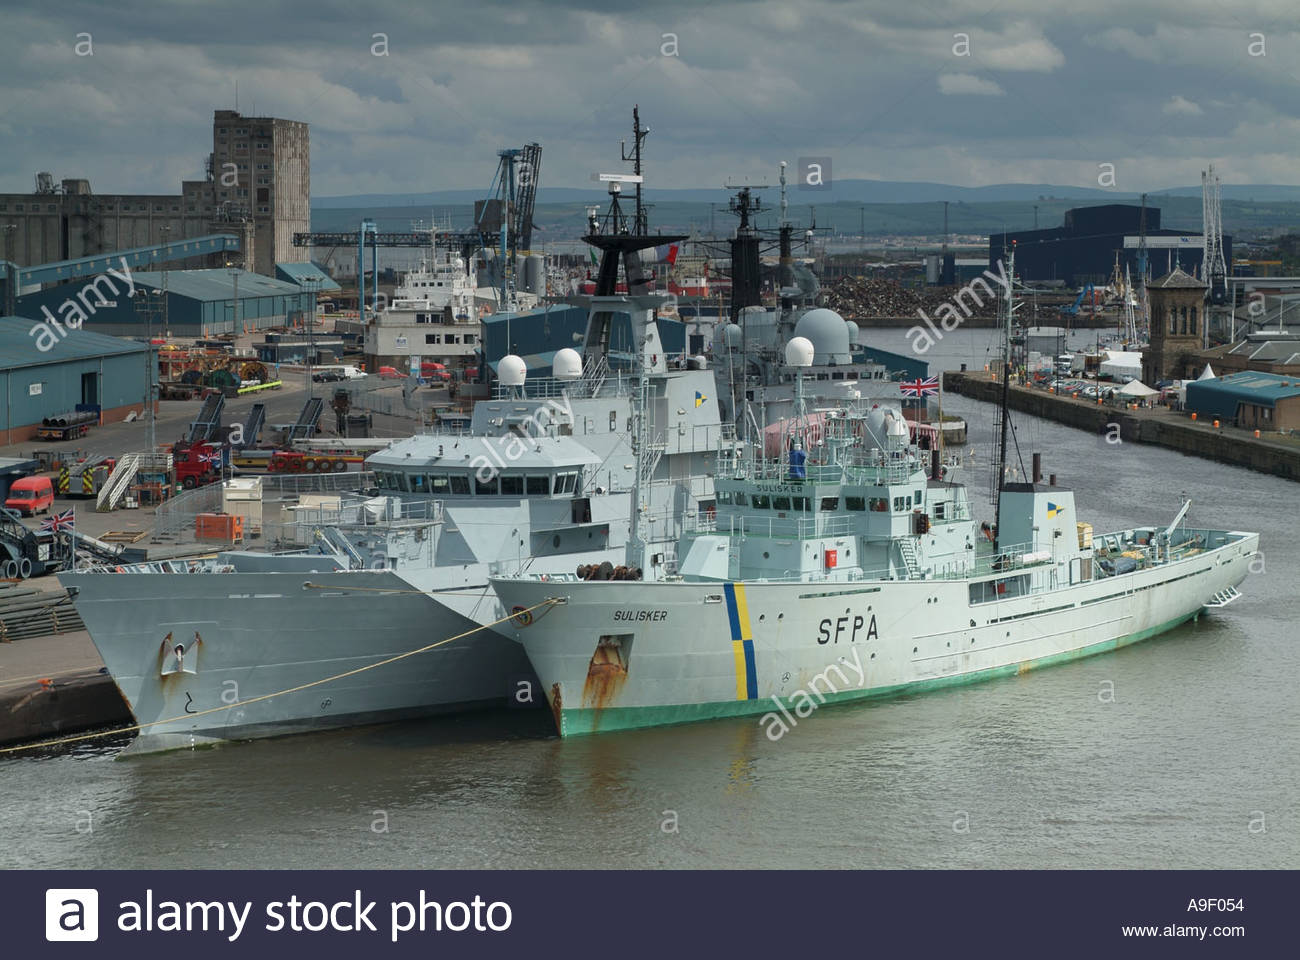 the-scottish-fisheries-protection-agency-vessel-the-sulisker-and-hms-A9F054.jpg